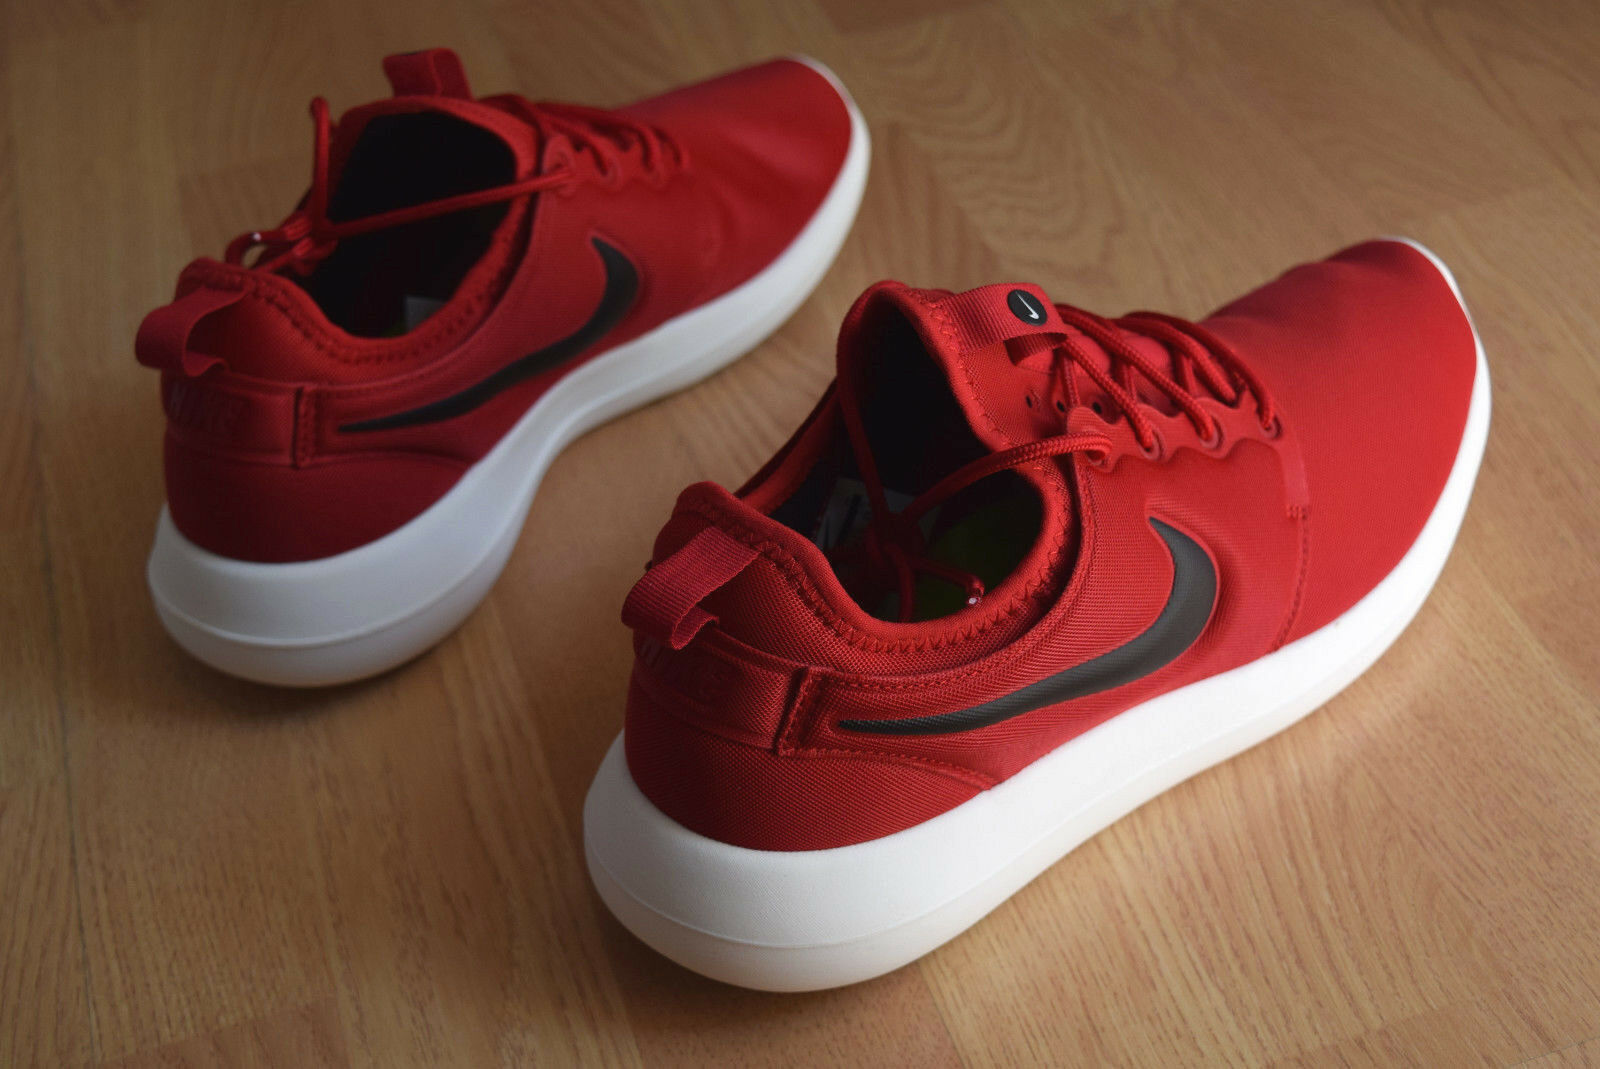 best service 10265 6c2a8 ... where can i buy nike roshe two 41 42 one 44 45 46 47 one 42